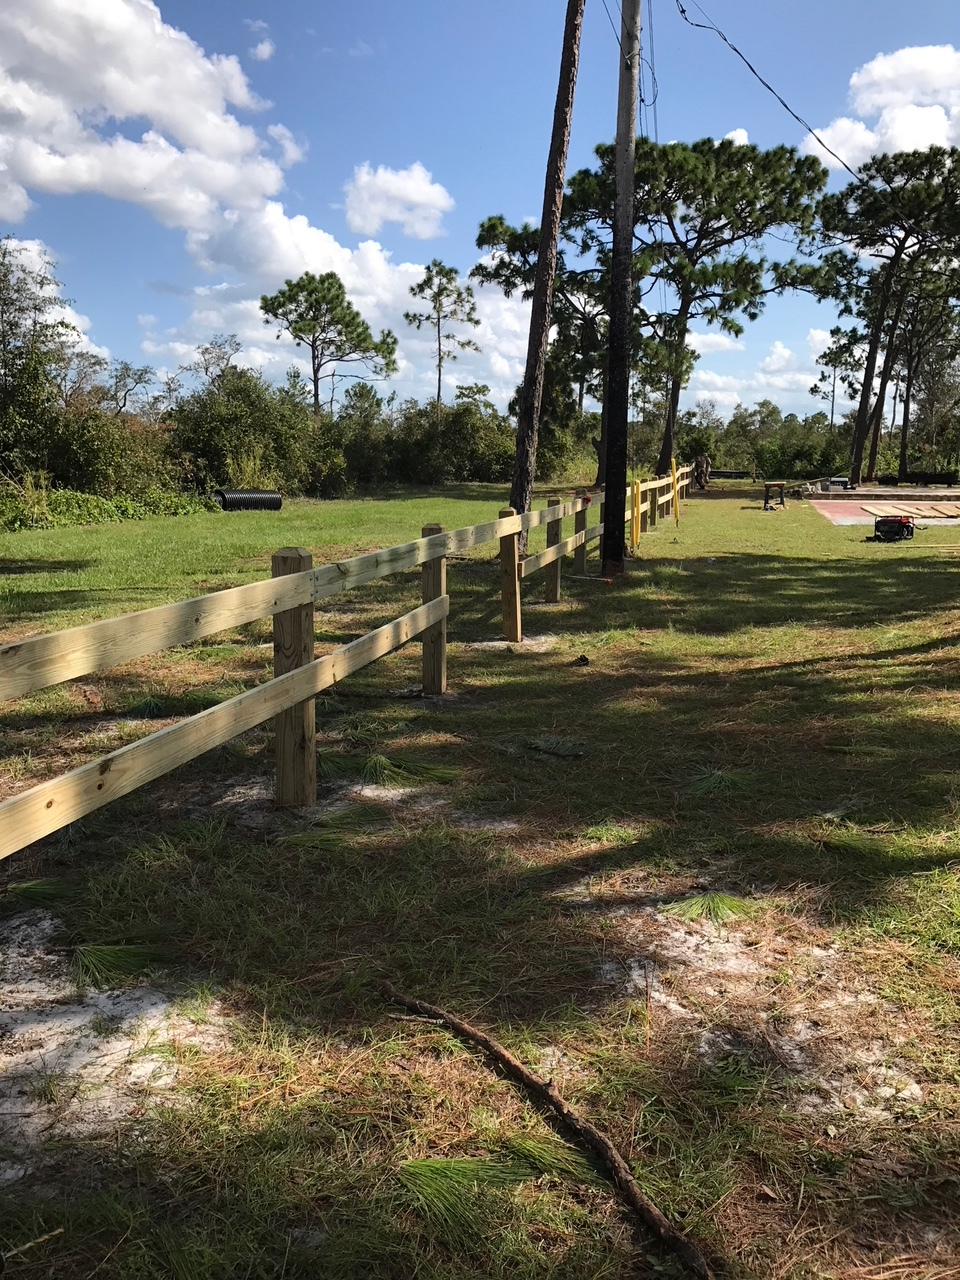 The fence spans the East Side of our property and serves as a decorative delineation between our property and the adjacent Wickham Park woods.   An opening was left to allow people to freely pass both ways.